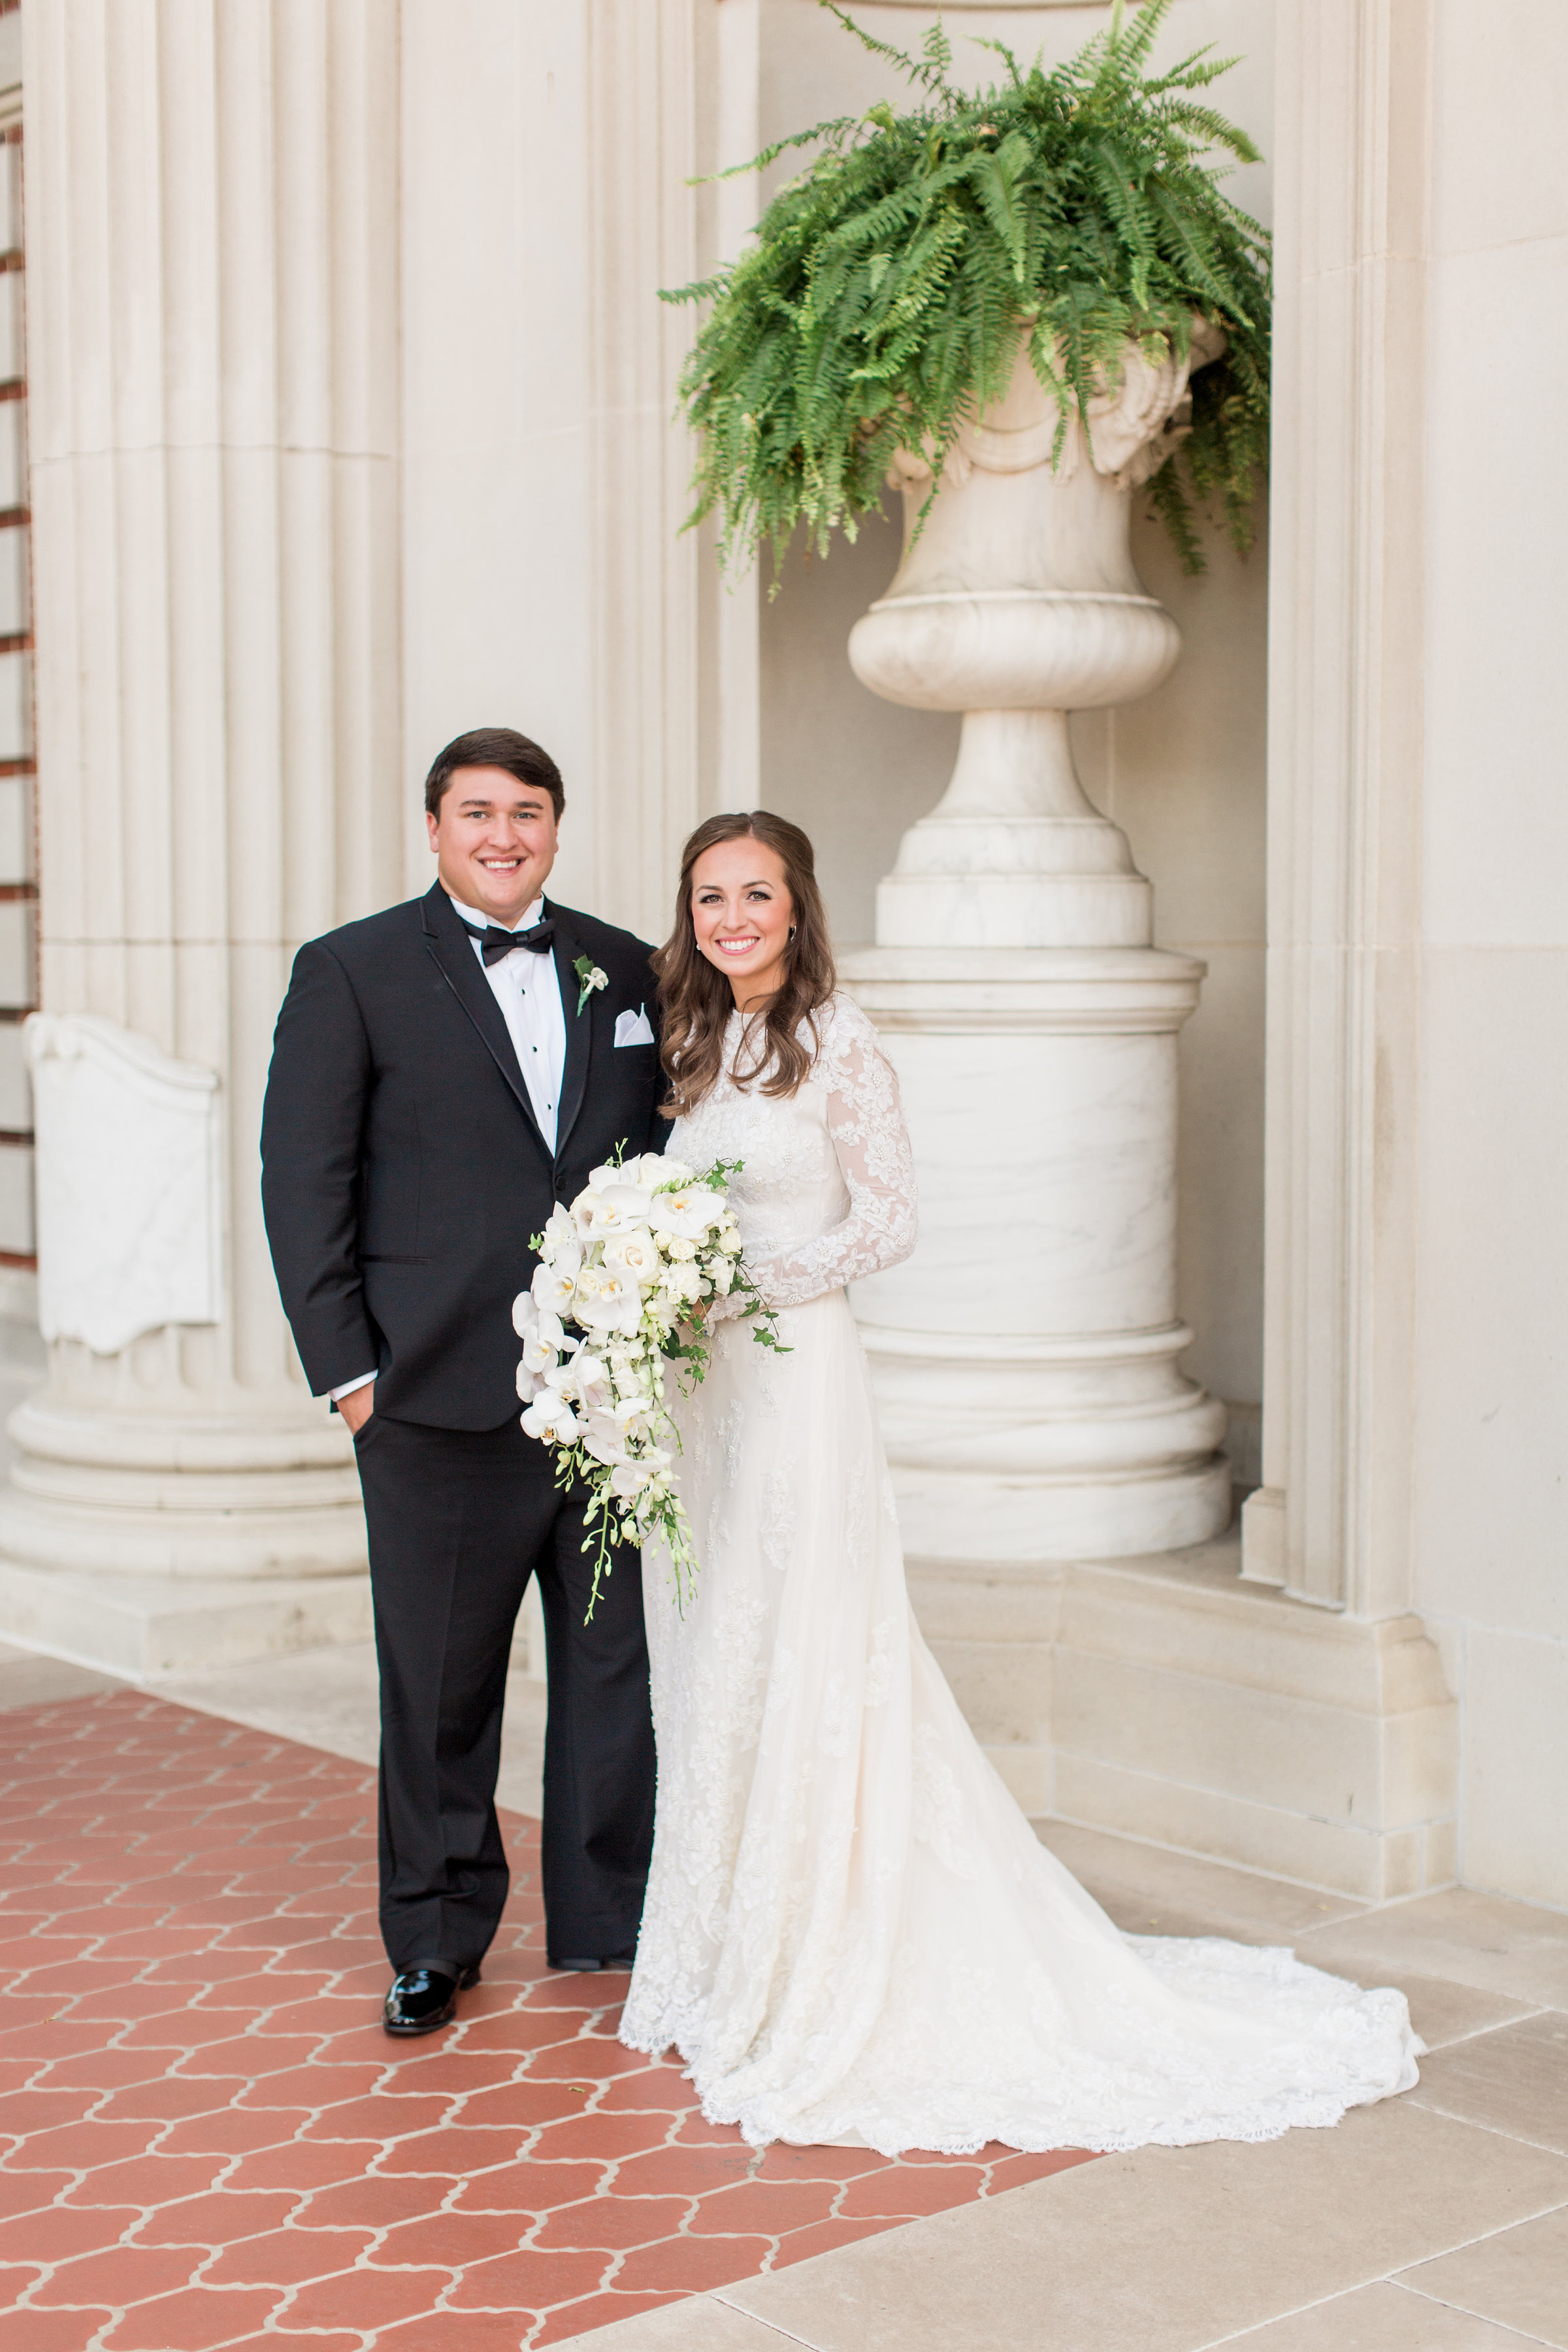 This has been one of our favorite pictures from our wedding day. Erin Wilson did an amazing job capturing all the special moments. She is incredibly talented and made us feel so comfortable.